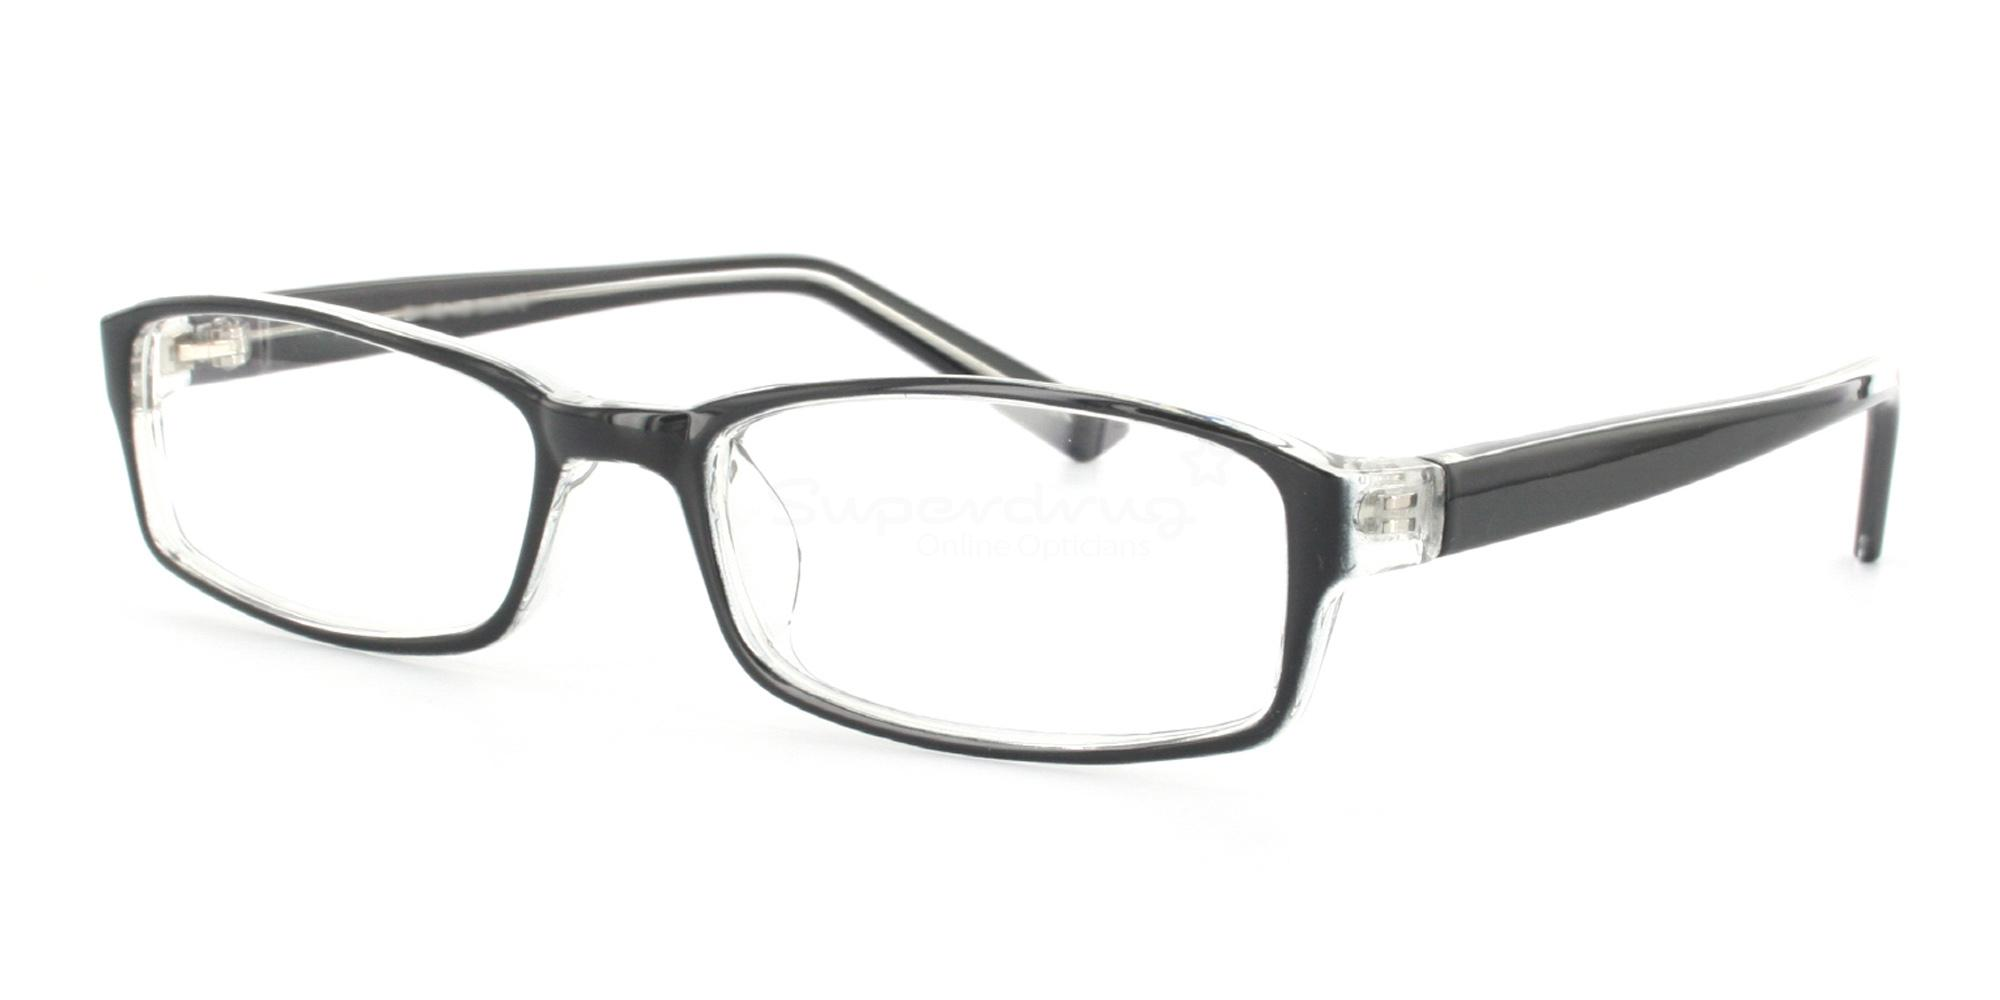 COL.33 2264 - Black and Clear Glasses, Helium